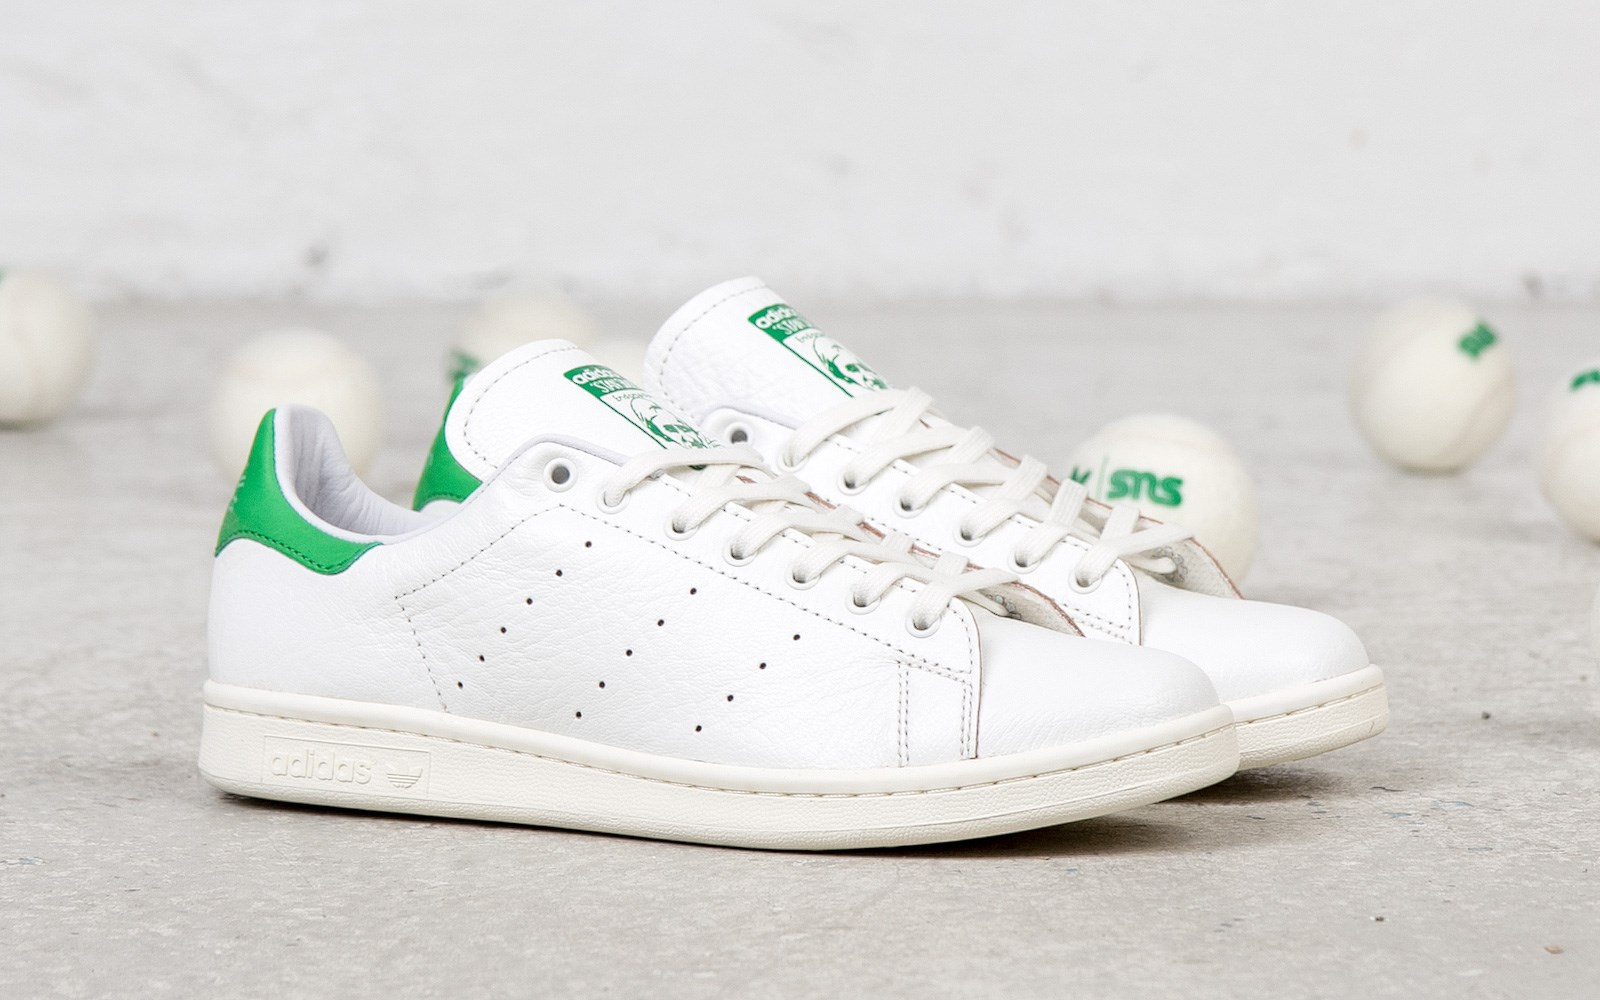 Stan Smith Adidas Originals